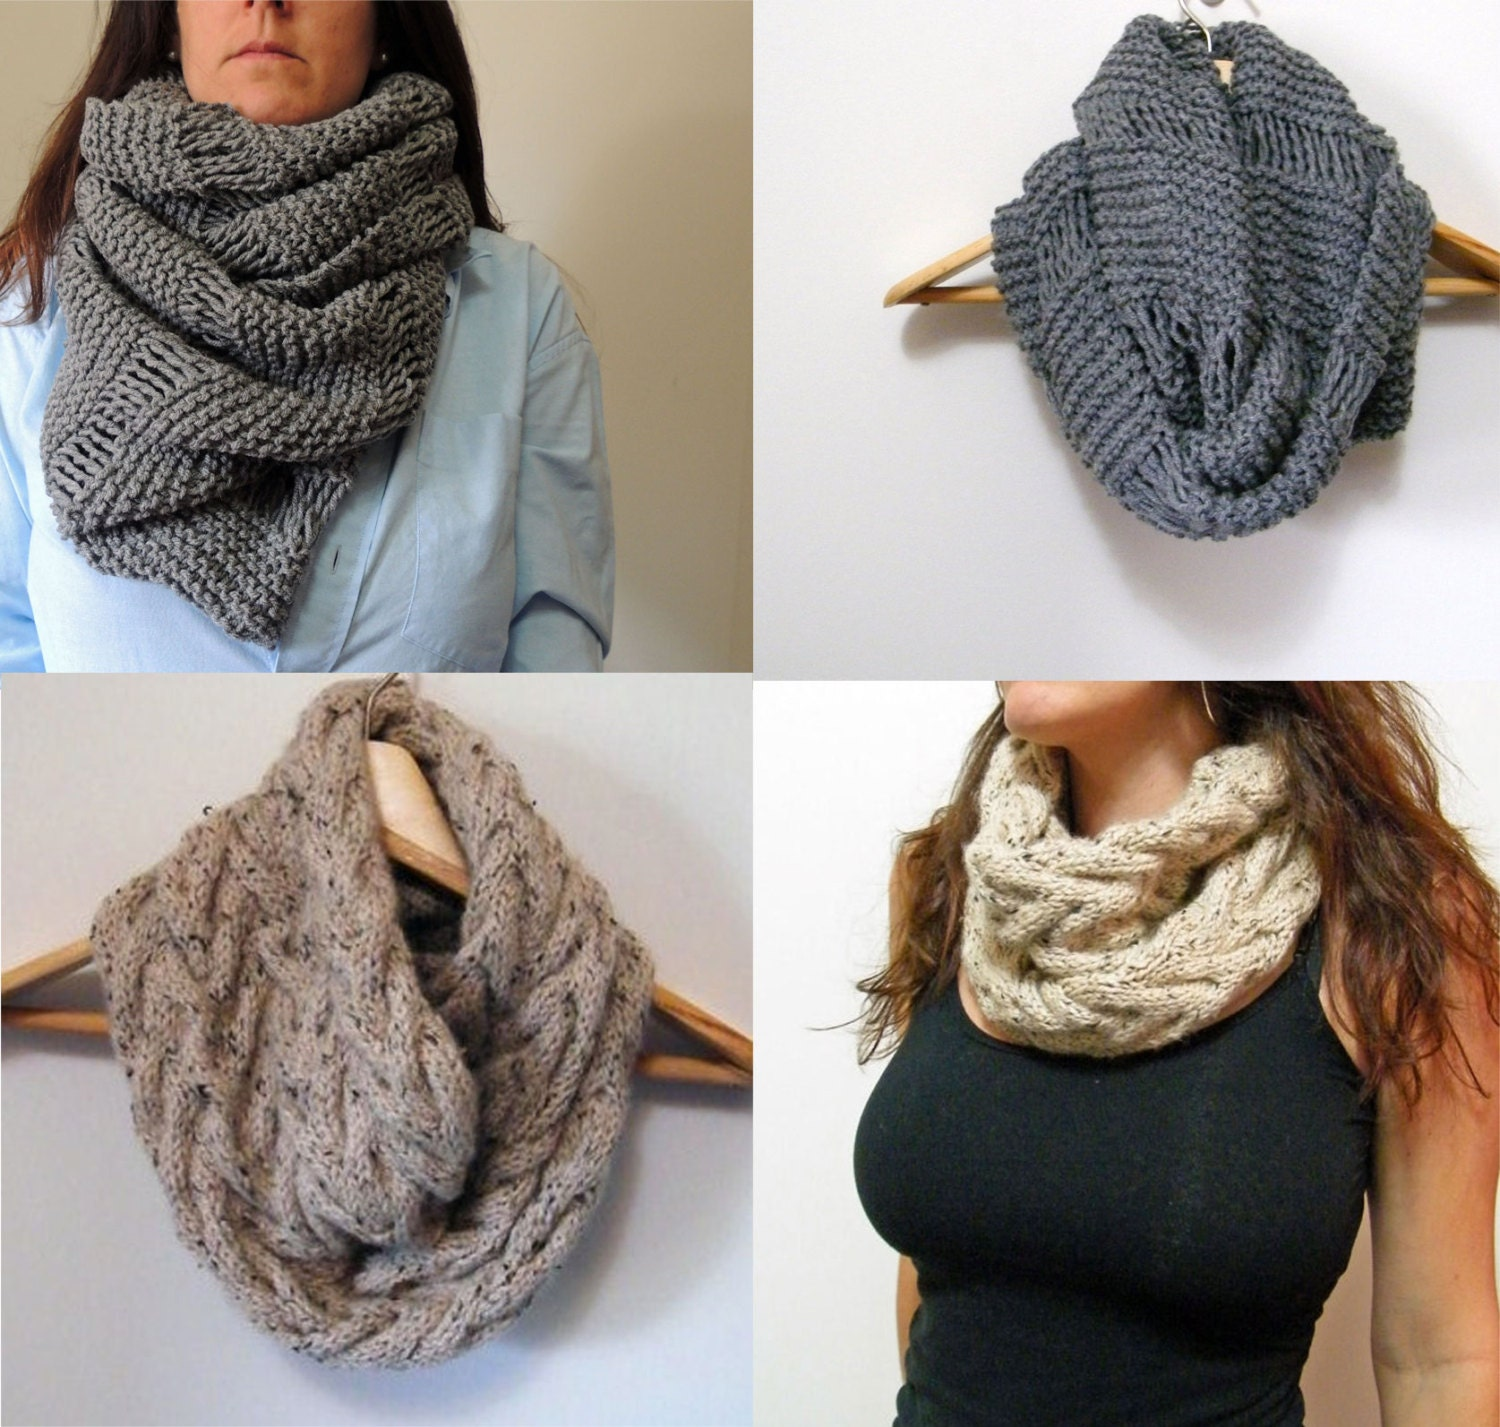 Knitting Pattern Infinity Scarf Straight Needles : 2 Knitting Patterns Oversized Cowl Infinity Scarf & by LewisKnits